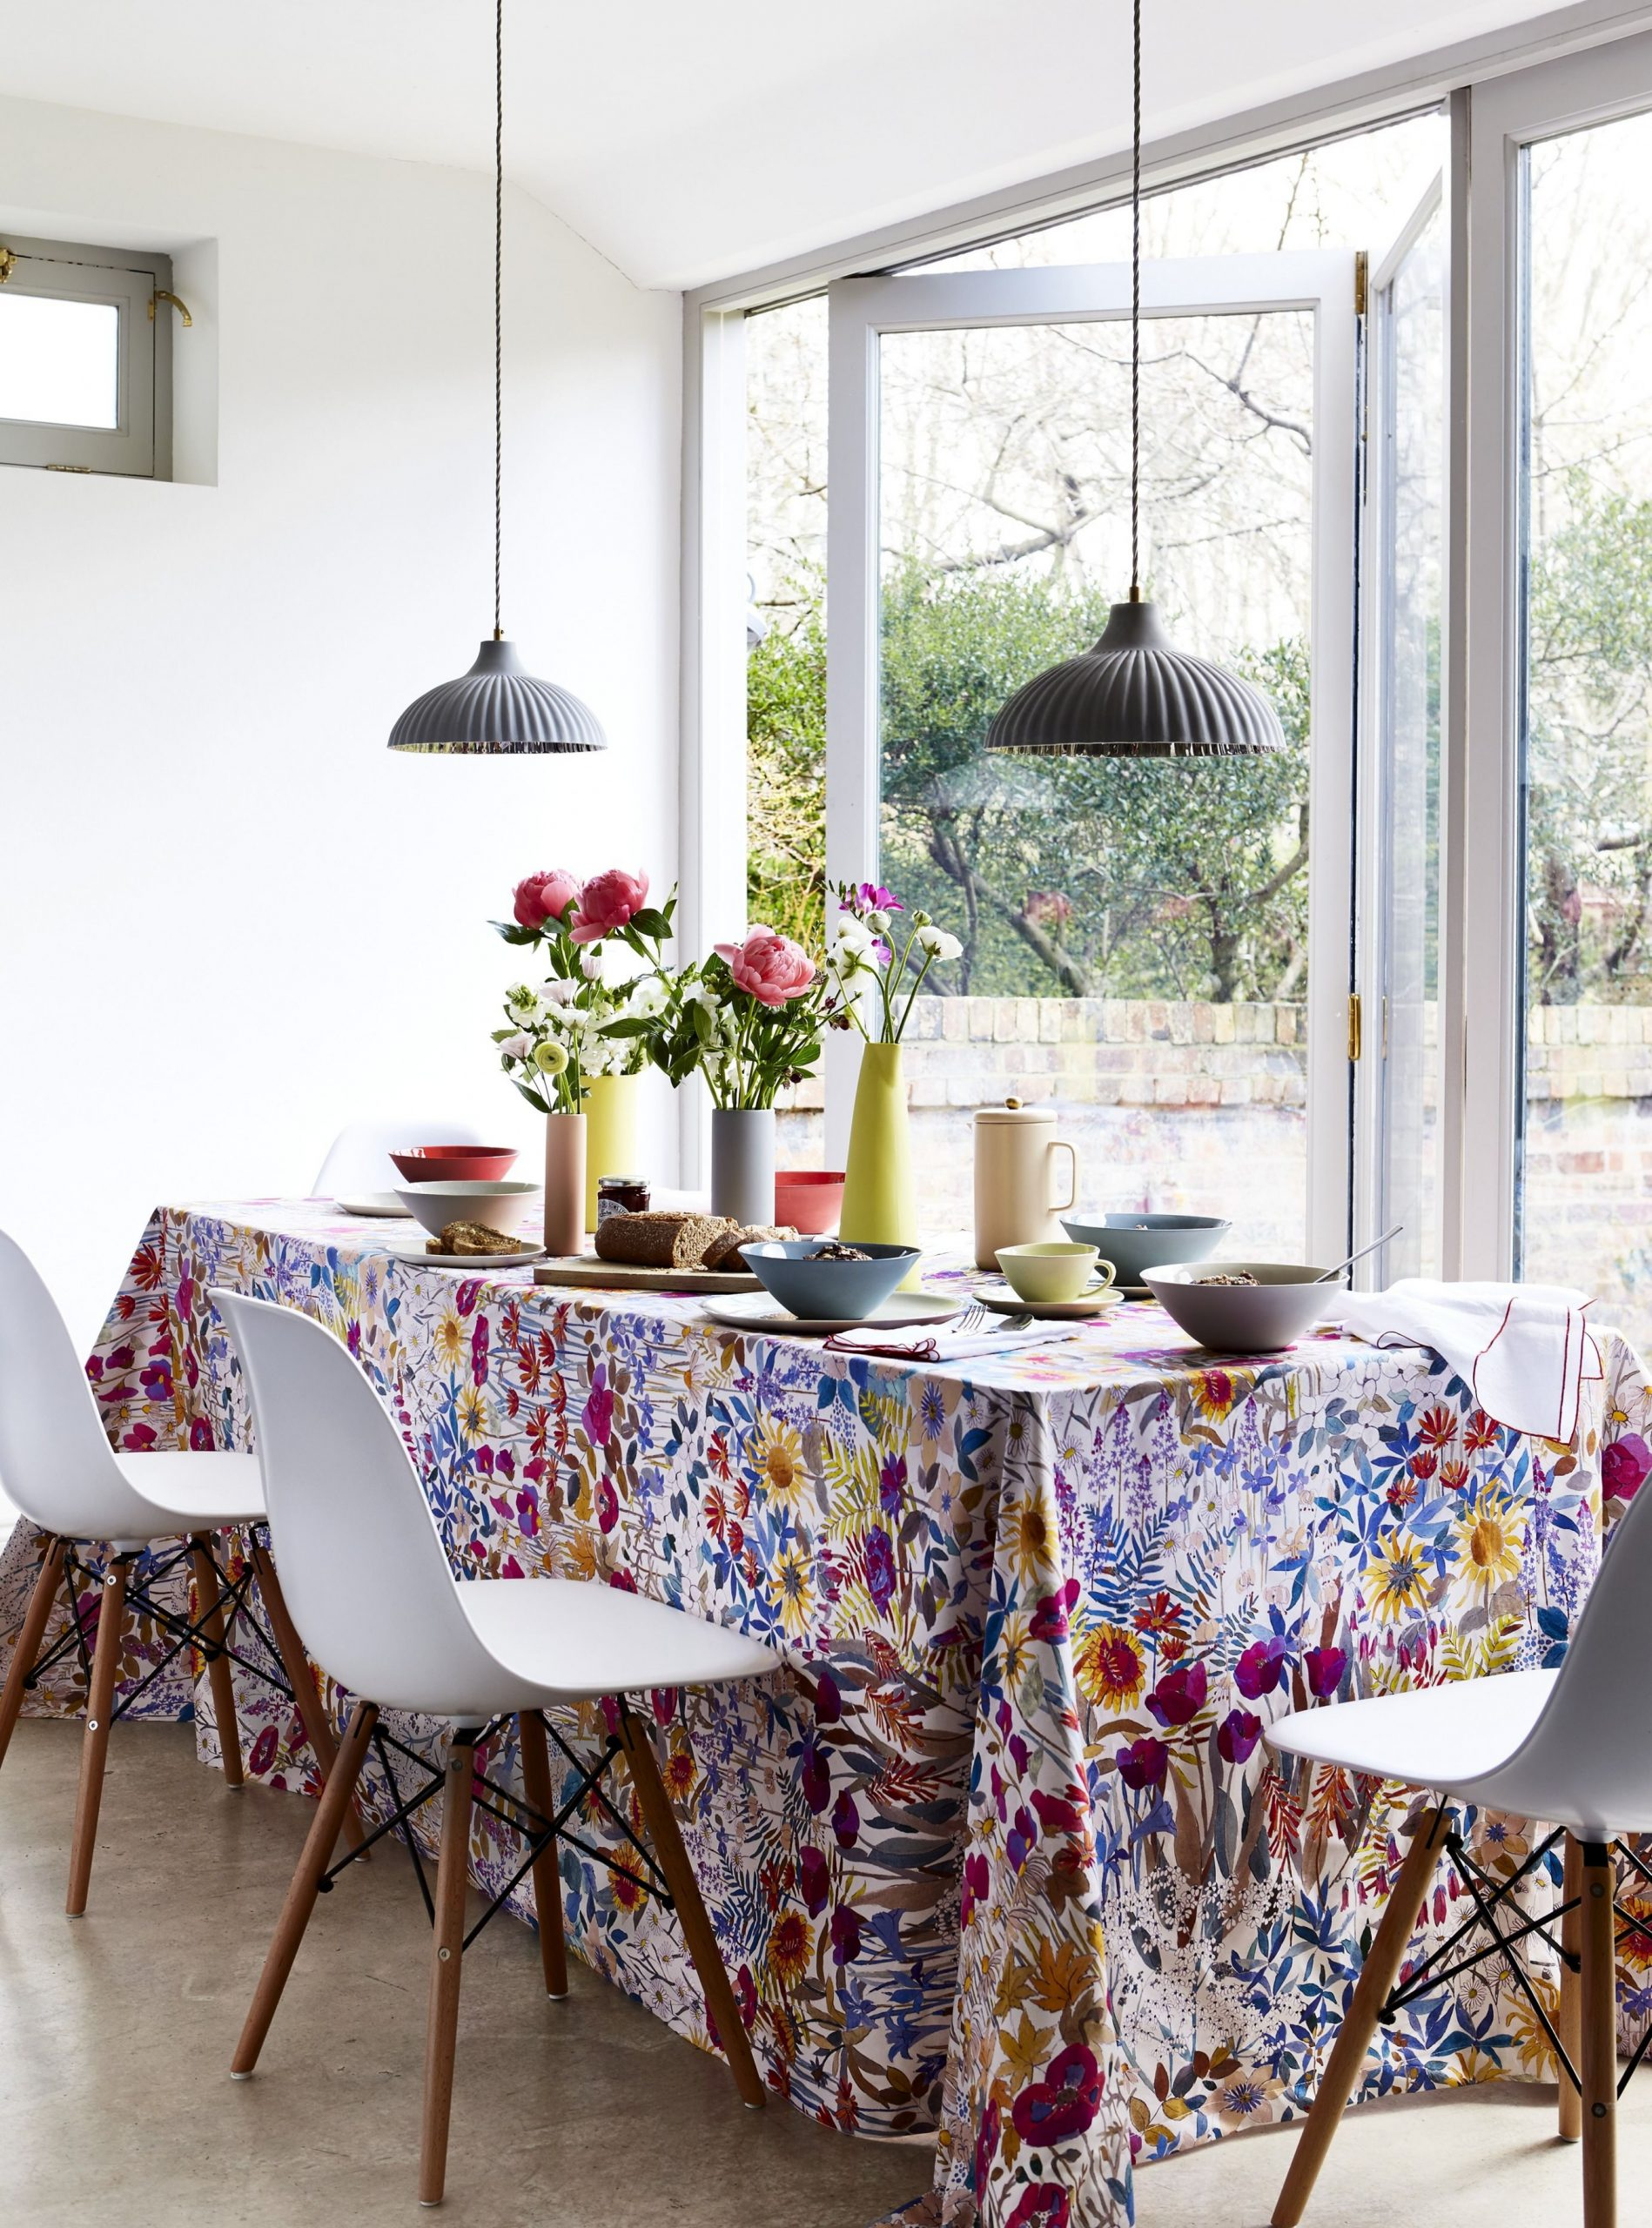 11 Best Dining Room Decorating Ideas - Pictures of Dining Room Decor - Dining Room Ideas Tablecloth